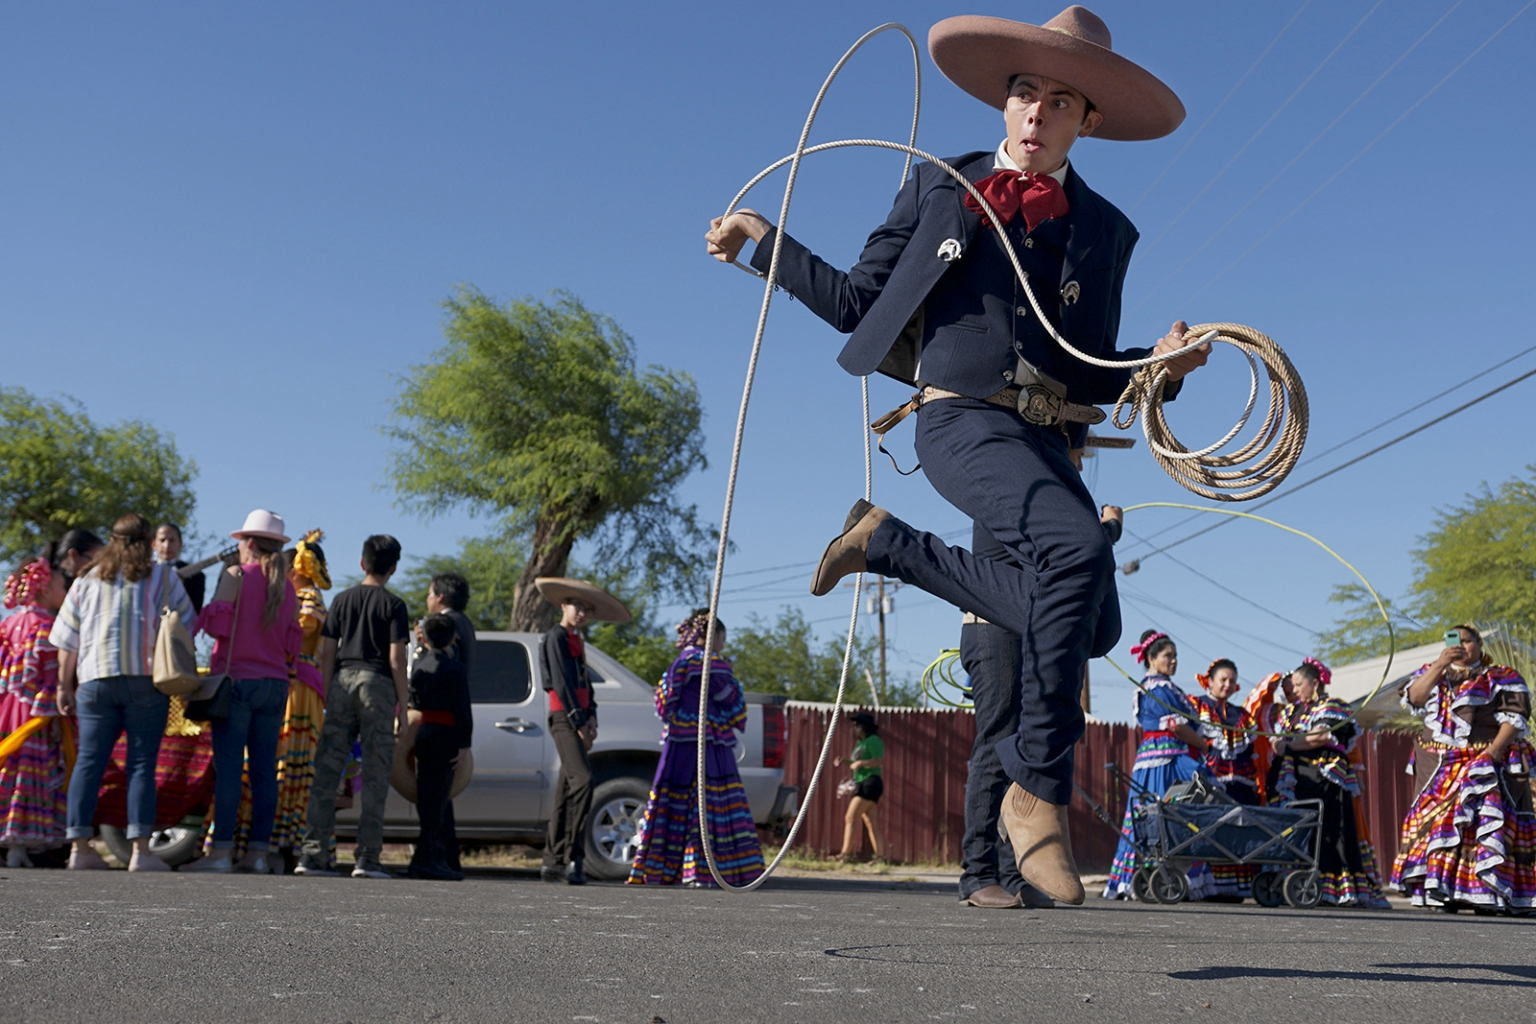 Ballet Folklorico dancers prepare to march in a homecoming parade for heavyweight boxing champion Andy Ruiz Jr. in Imperial, California, on June 22 in Imperial, California. SANDY HUFFAKER/AFP/Getty Images